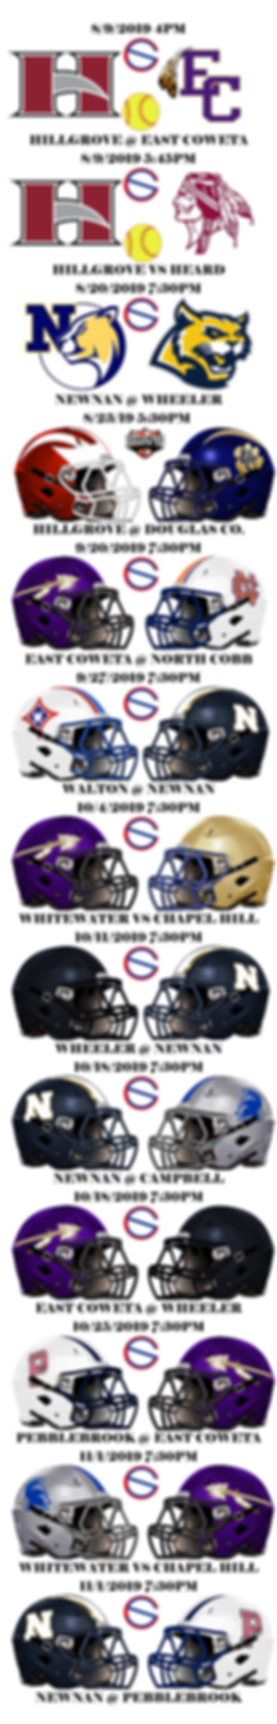 Cobb Co Fall 2019 Schedule.png